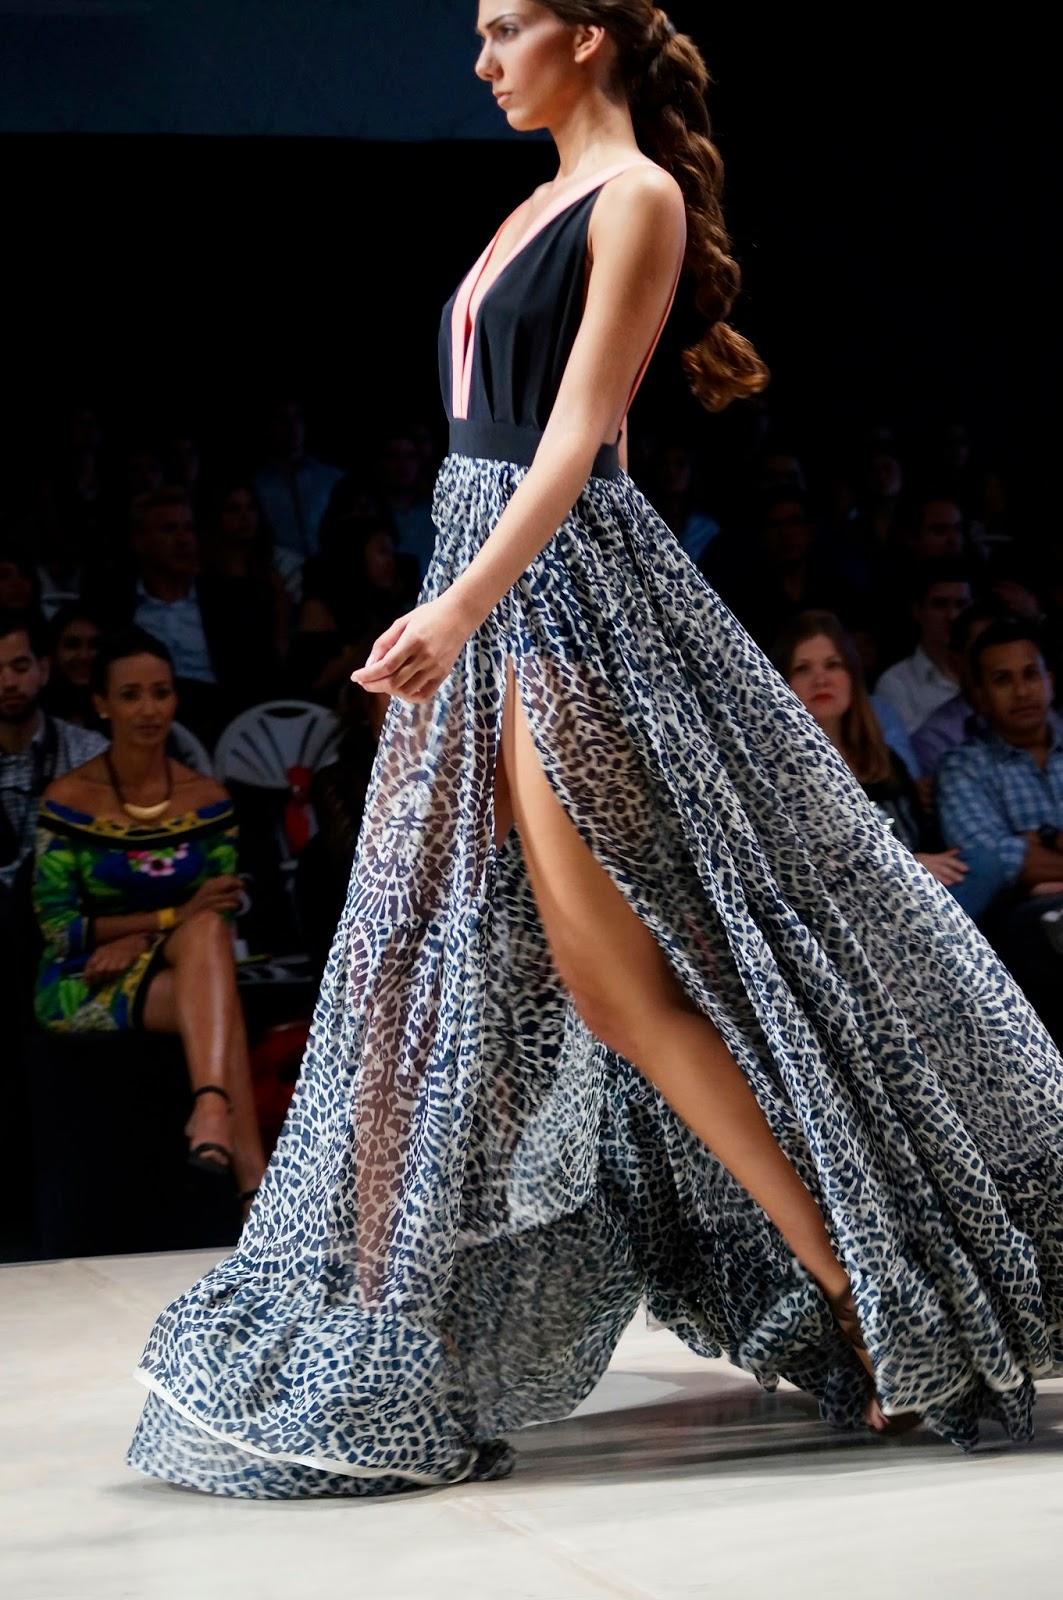 Pasarela Panama Fashion Week 2014, Kris Goyri